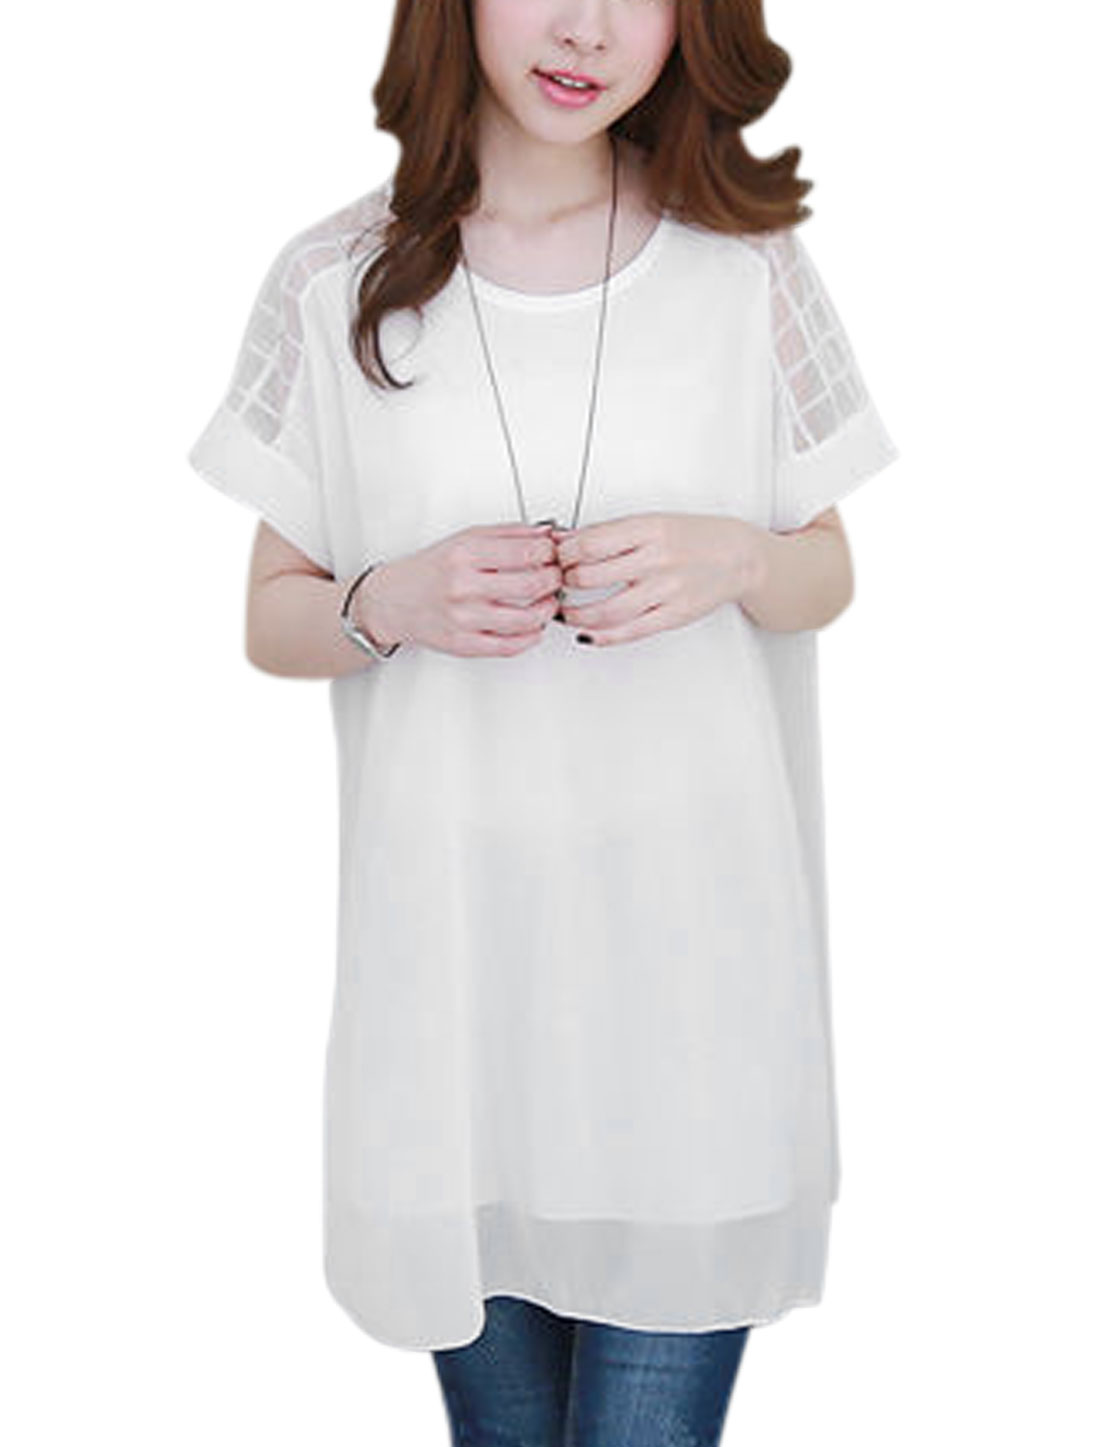 Women Mesh Panel Short Sleeves Fully Lined Tunic Shirts White S